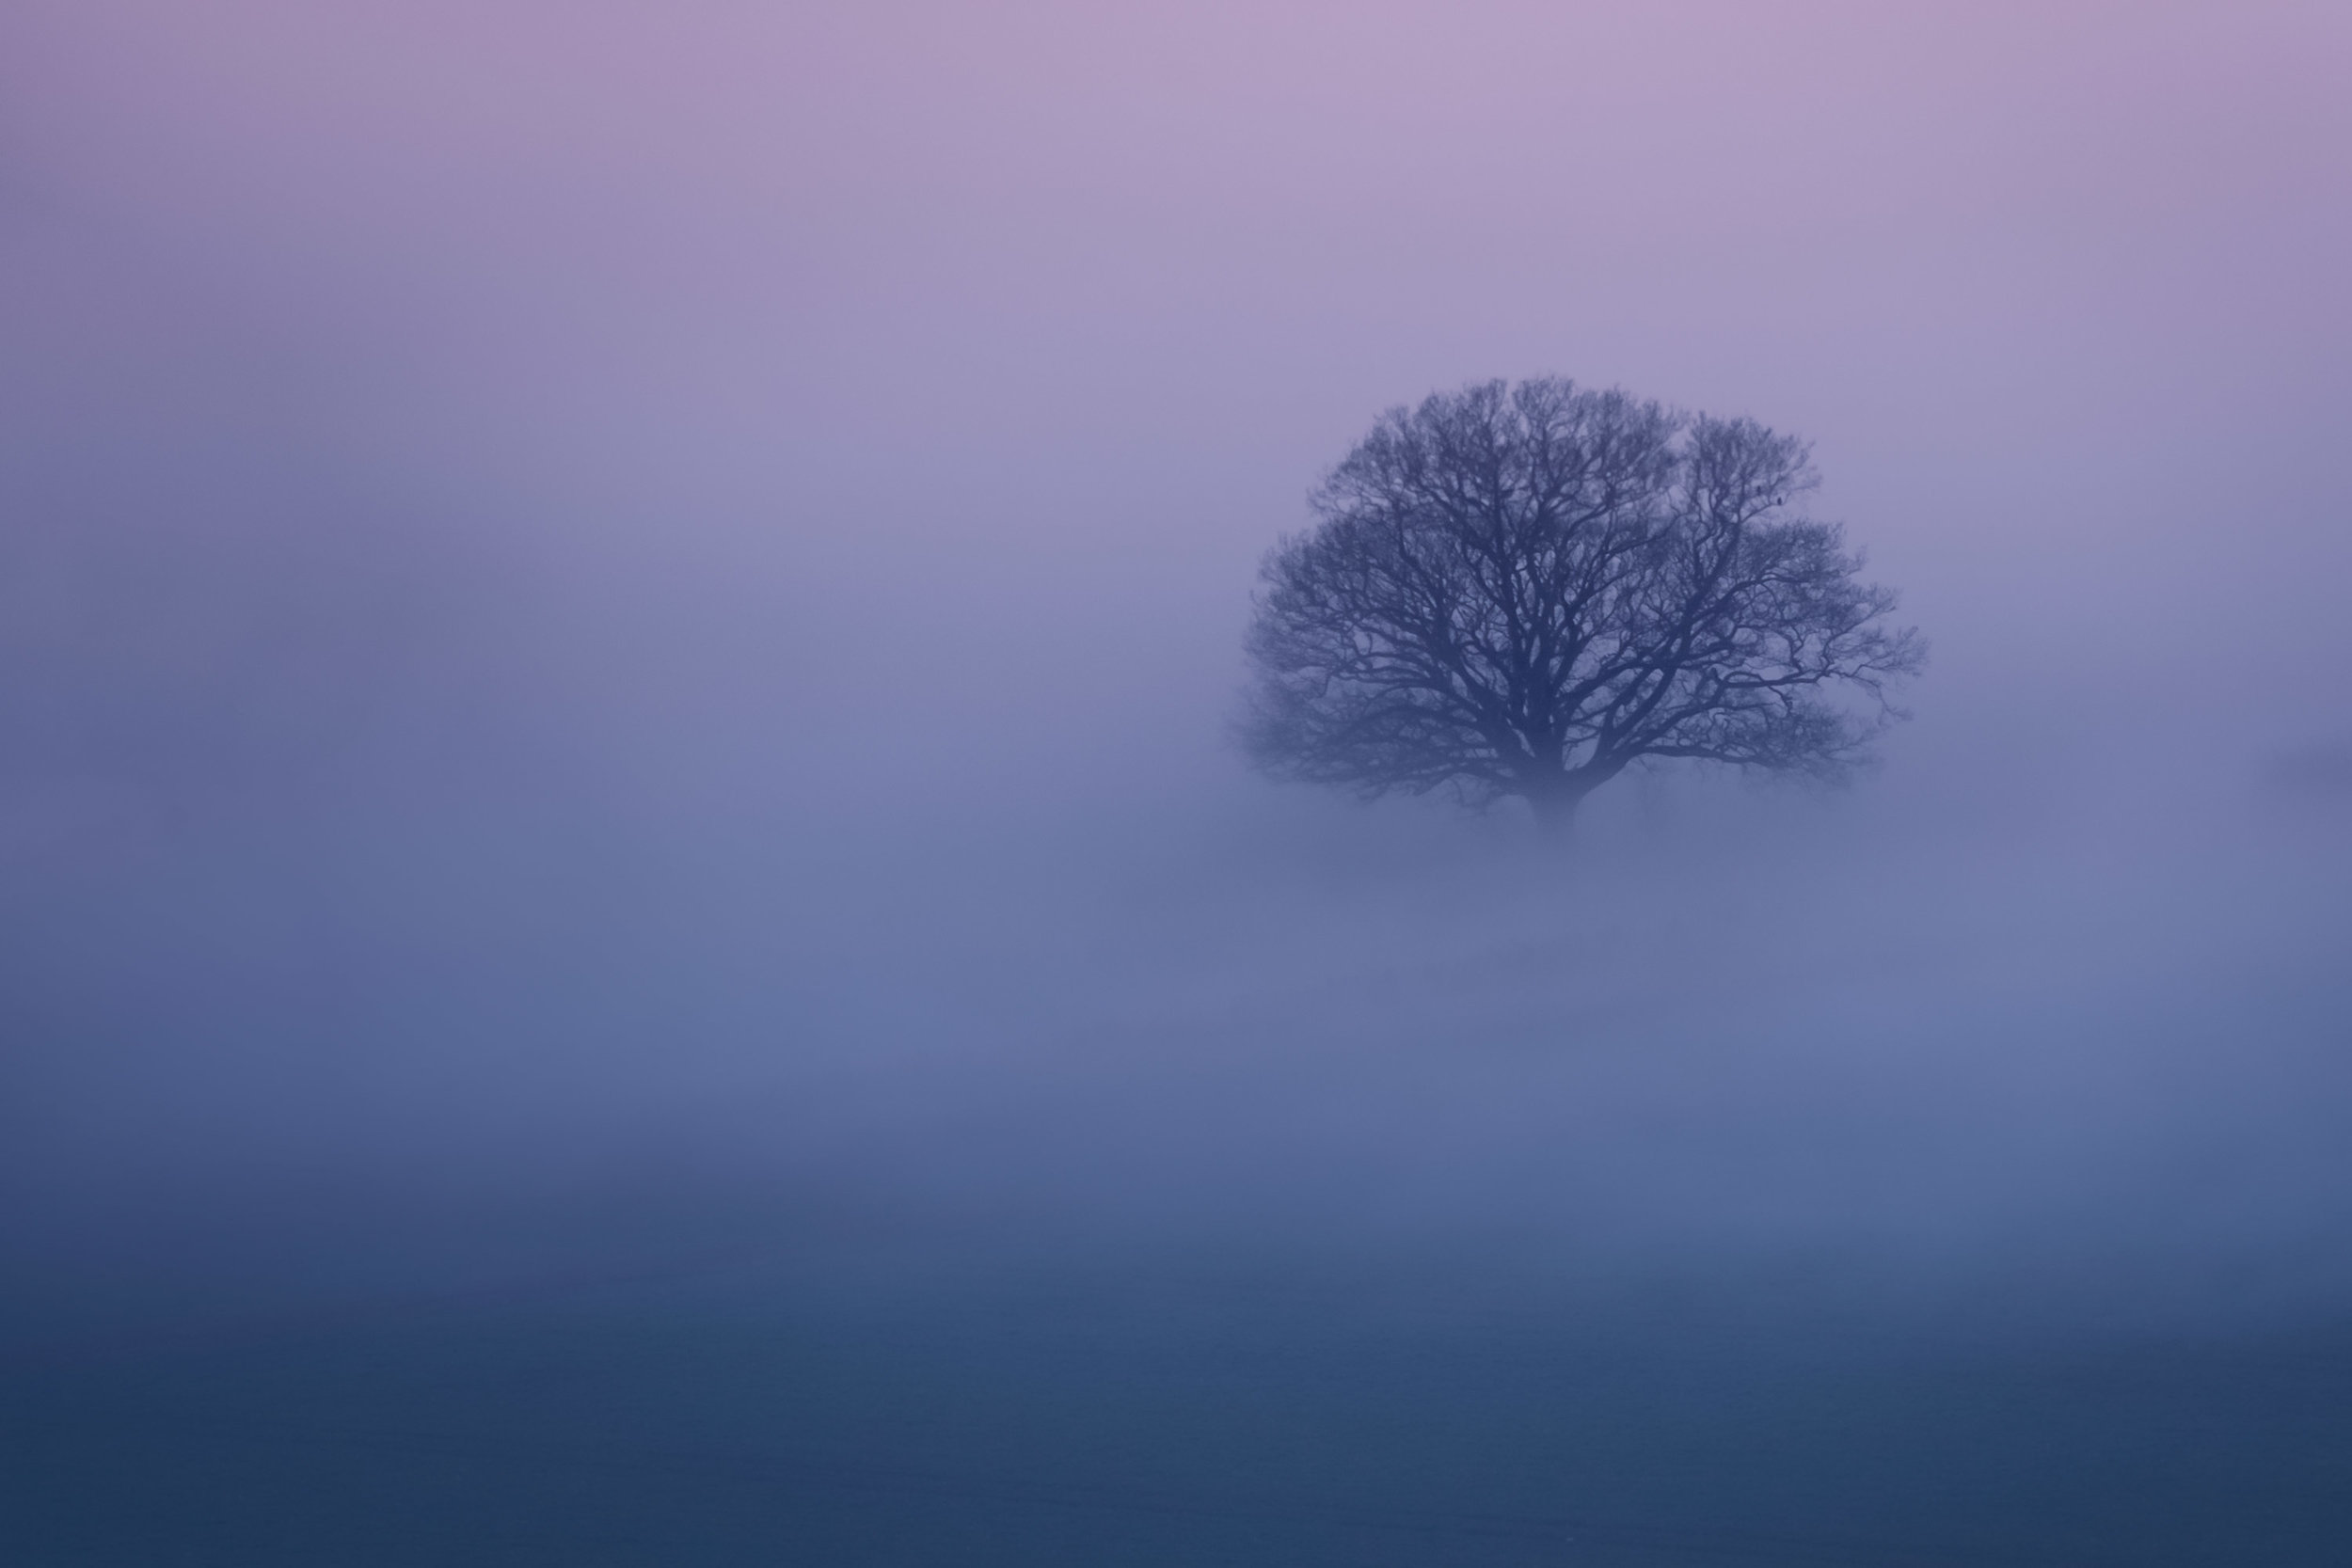 2019.02.28-The-Distant-Misty-Tree-32-WEB.jpg